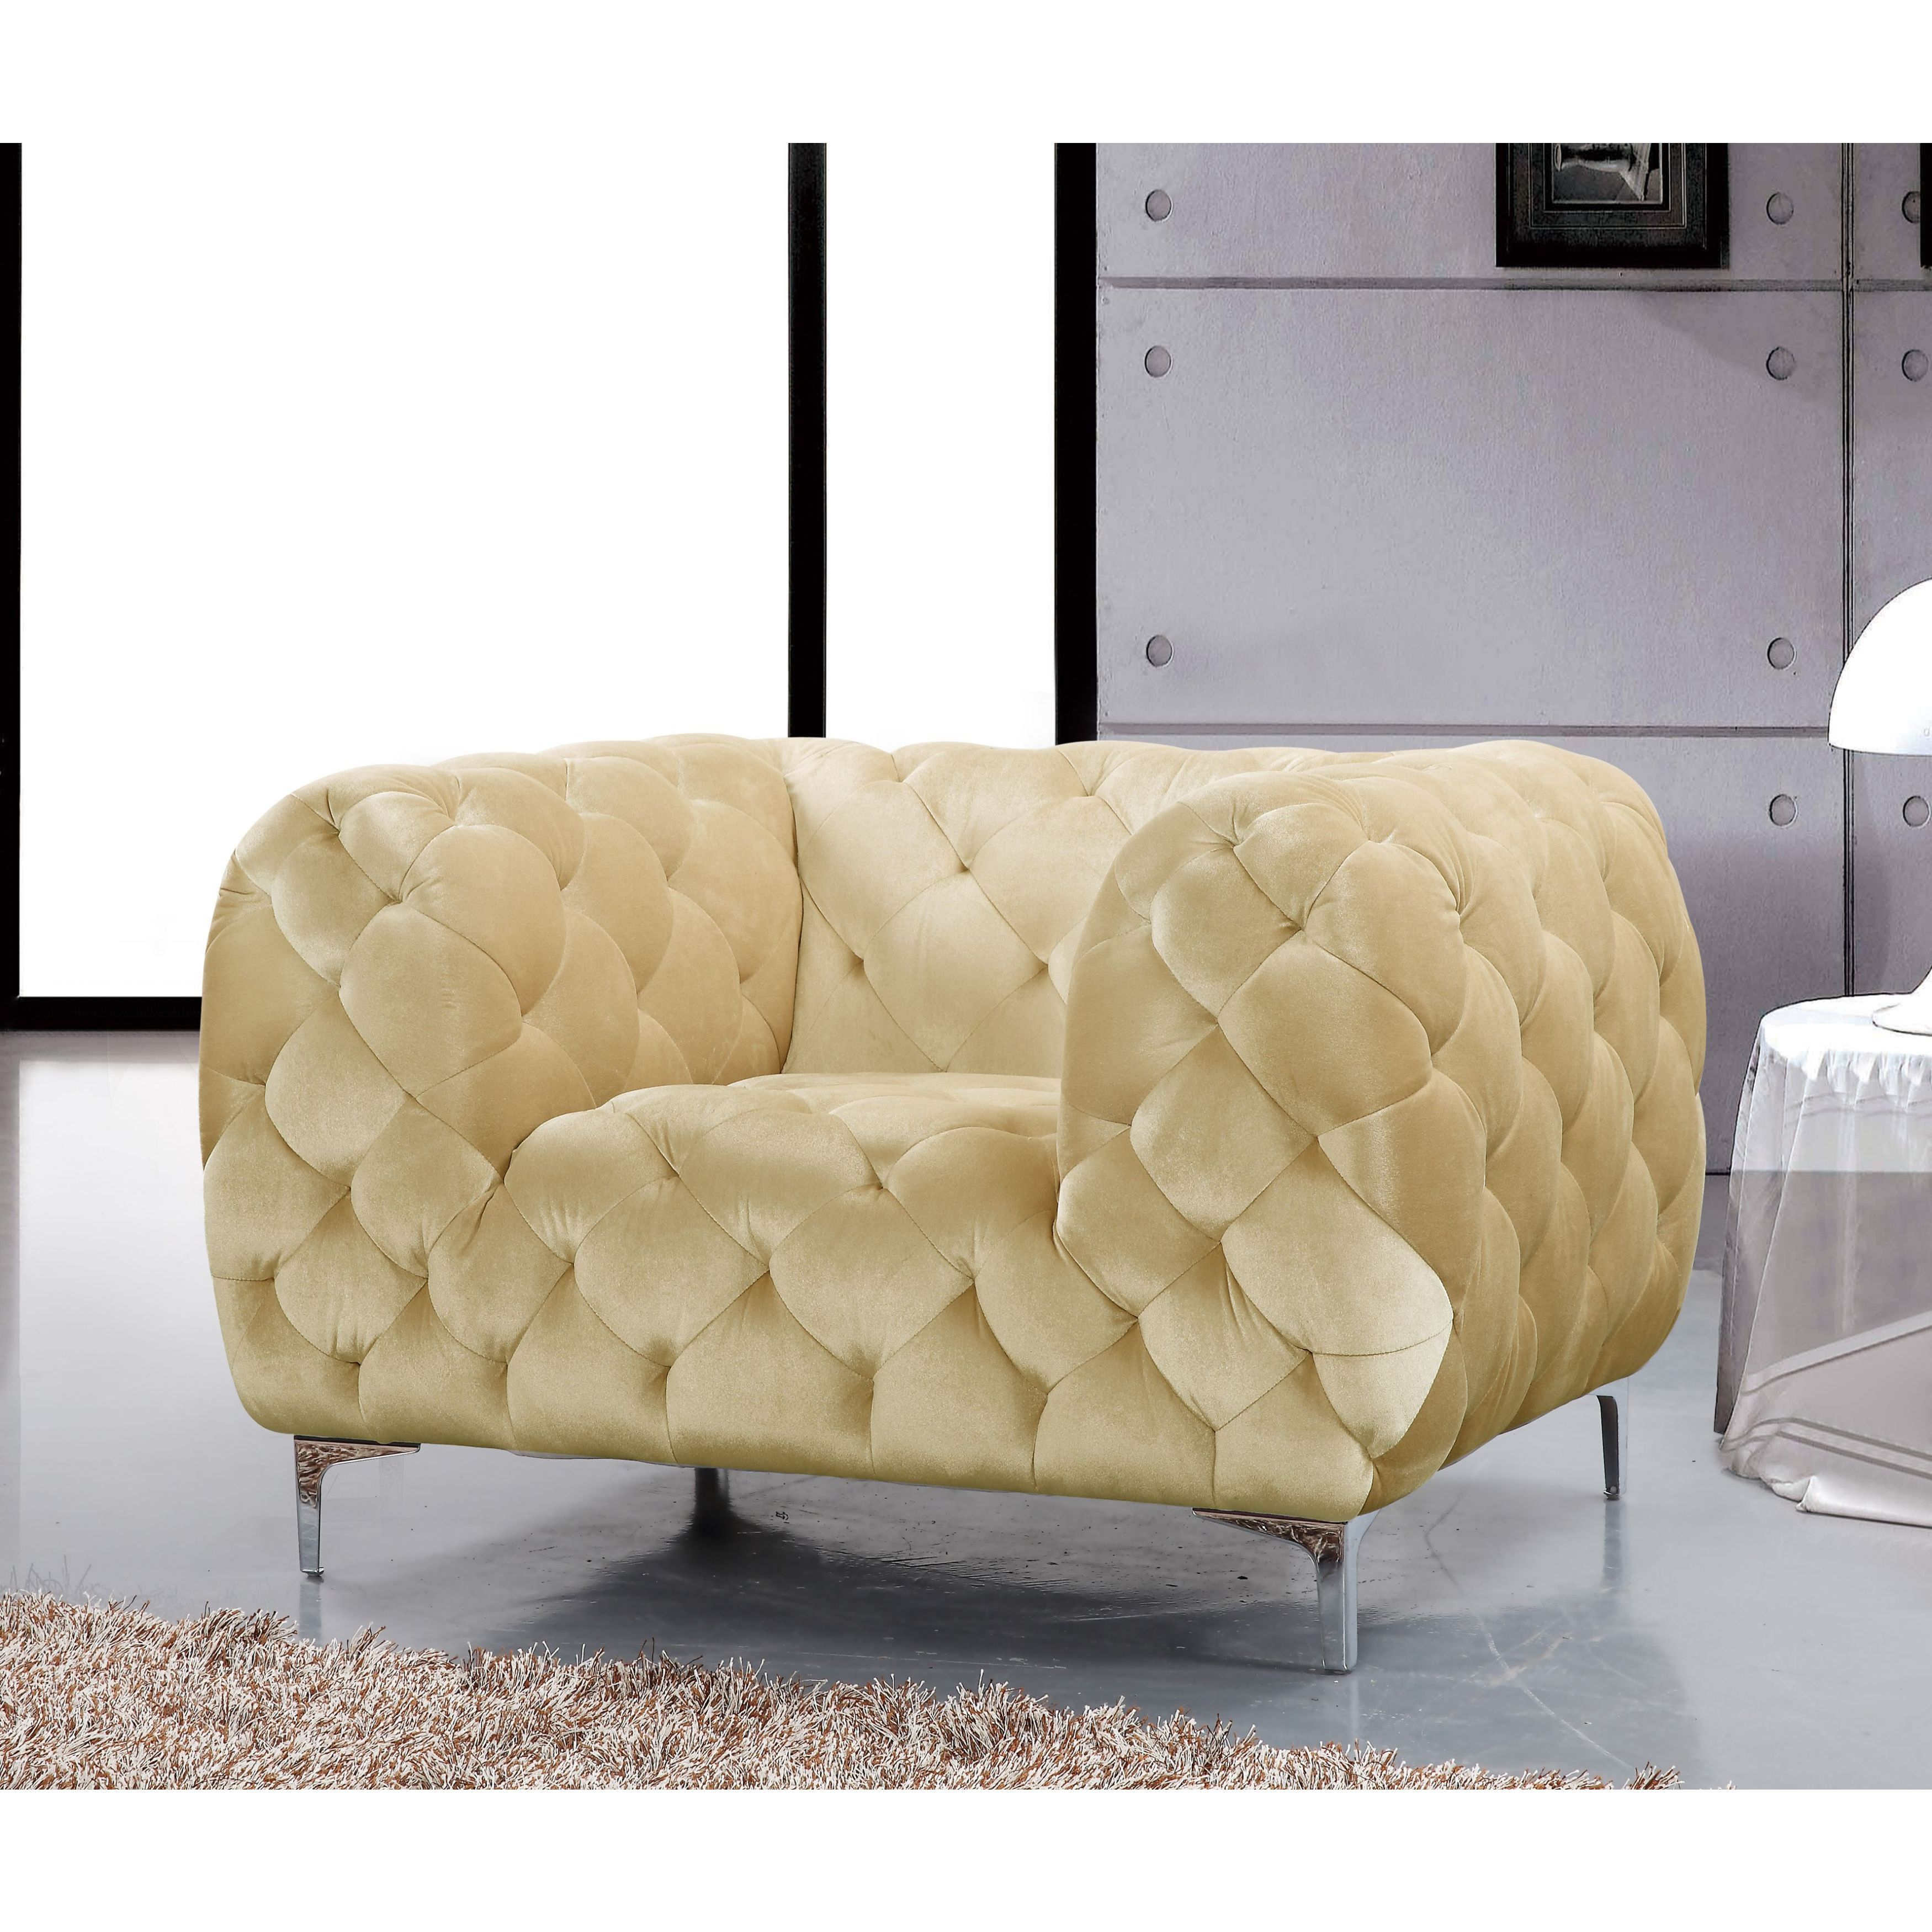 Shop Meridian Mercer Beige Velvet Tufted Chair – Free Shipping Today Regarding Mercer Foam Swivel Chairs (View 17 of 20)